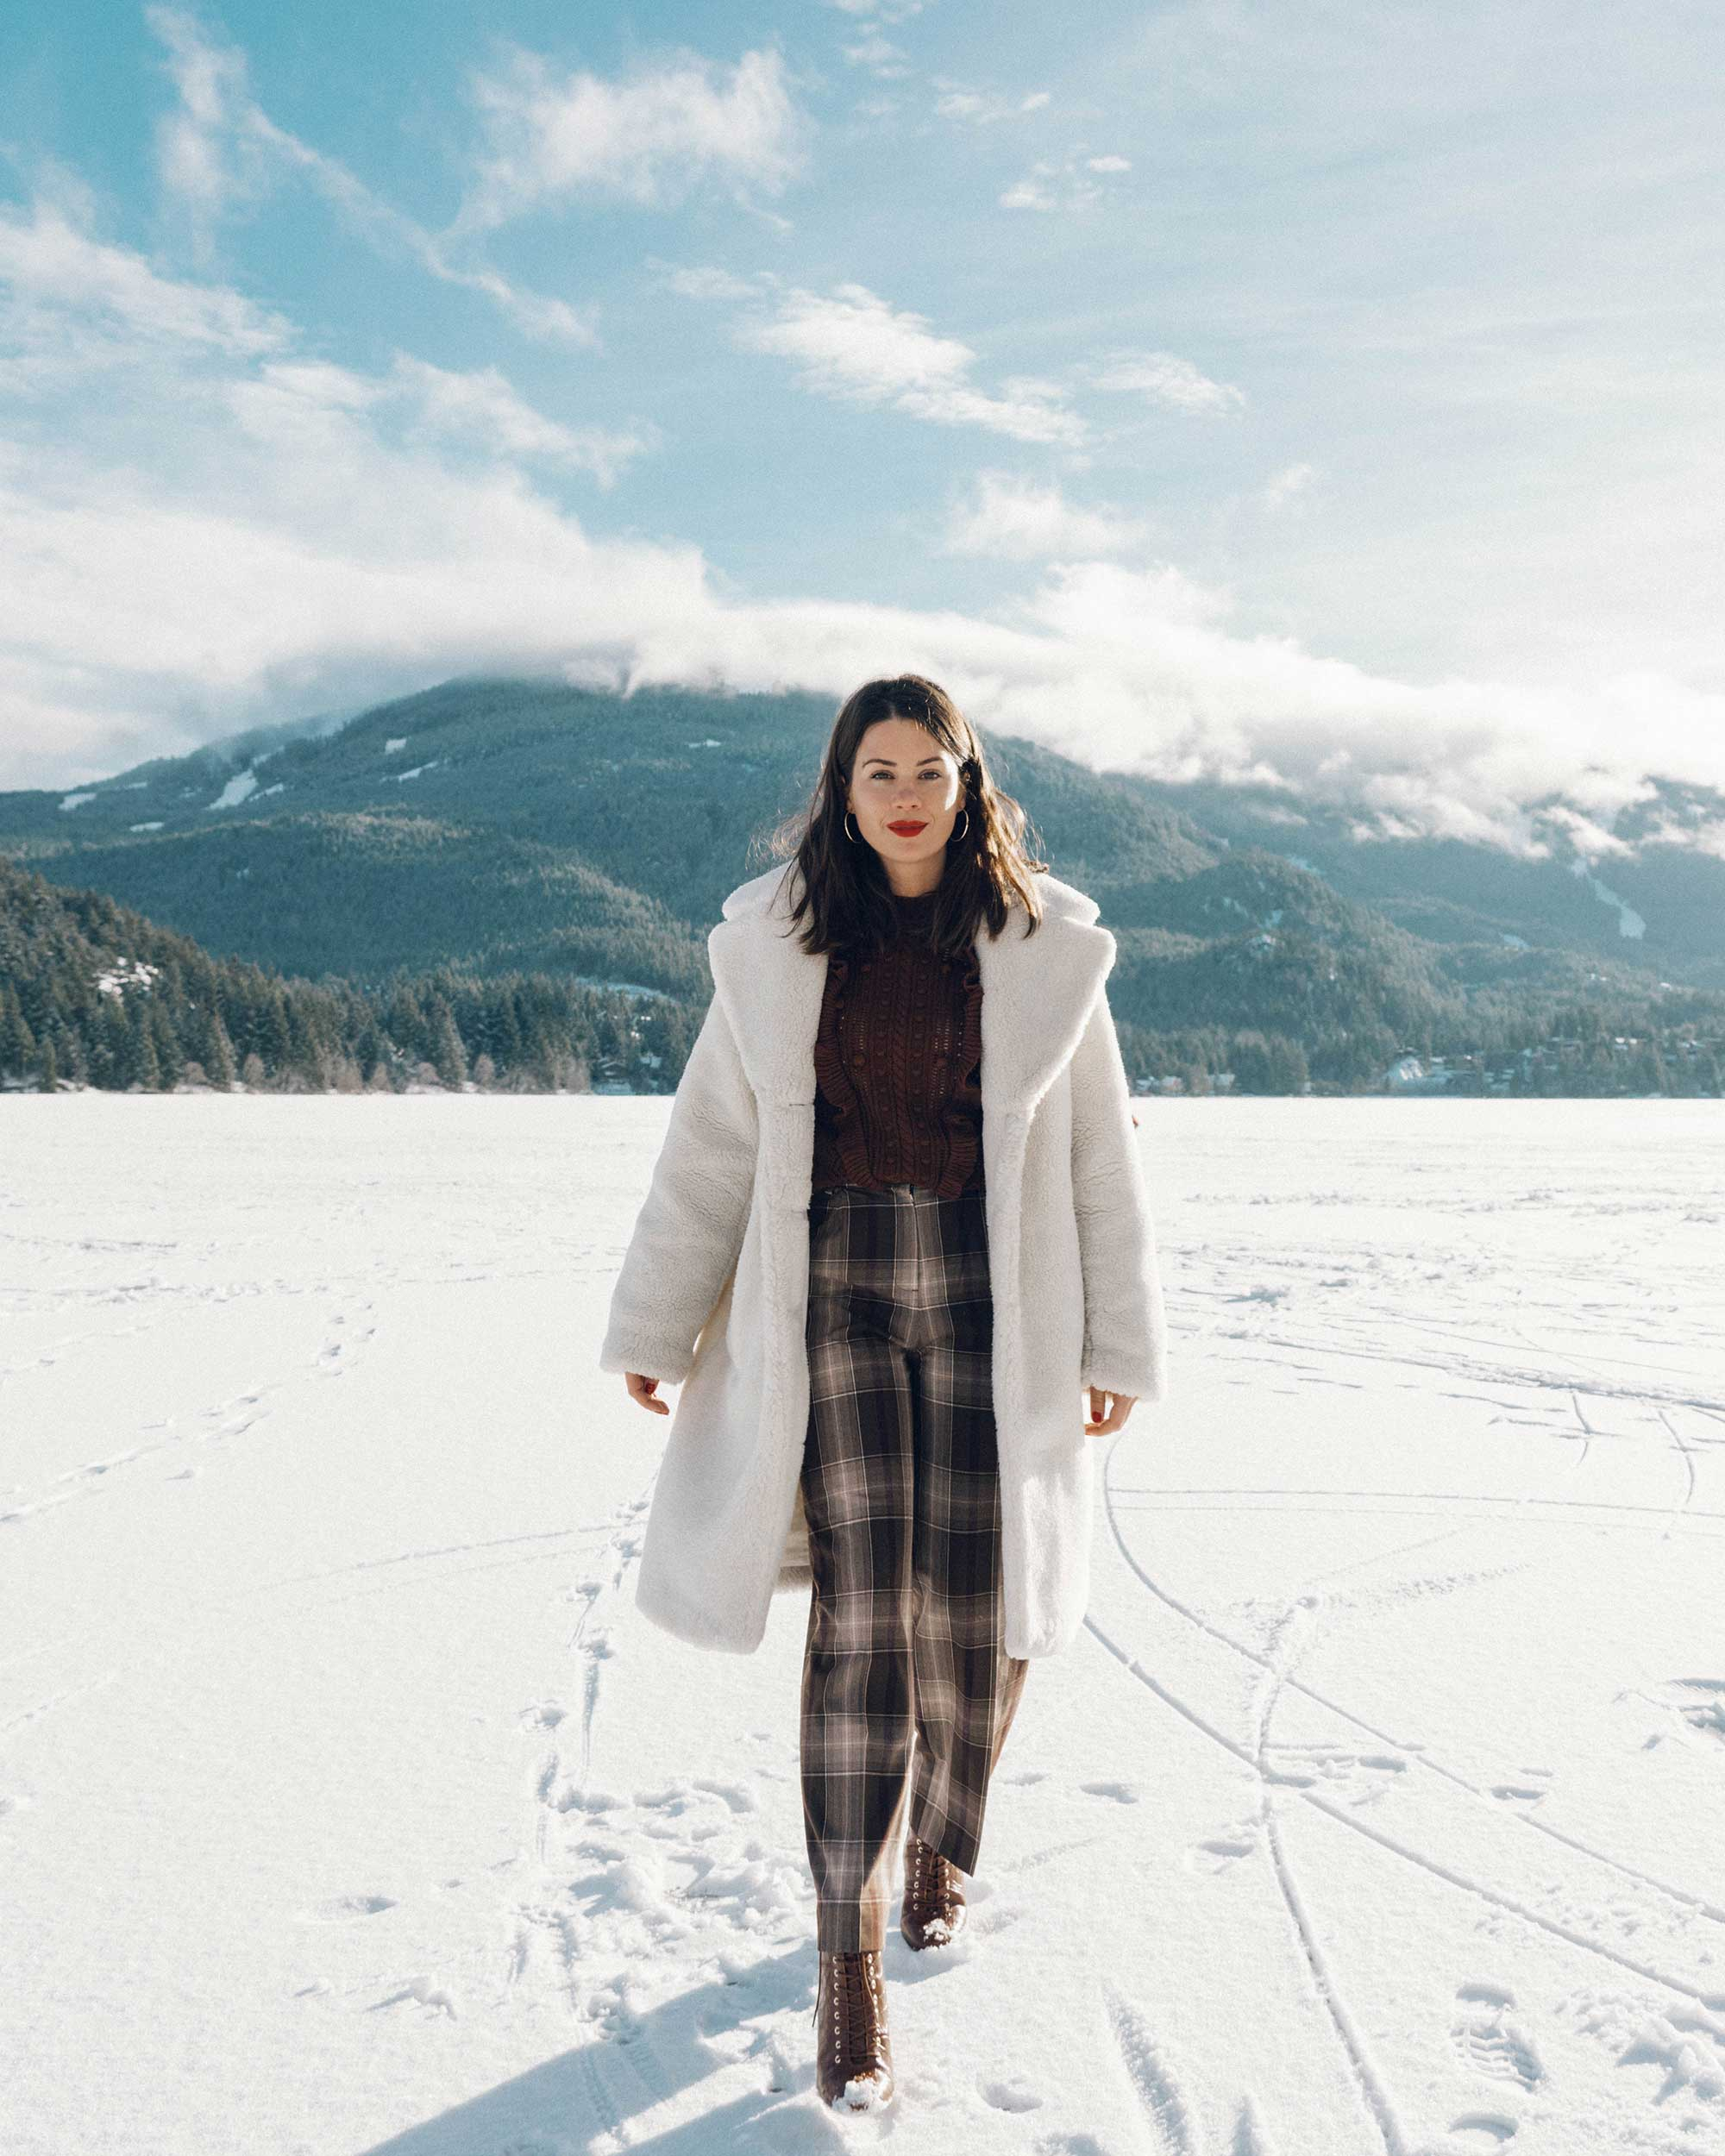 & Other Stories Tailored Brown Plaid Pants with pleats, white Faux Shearling Coat,  winter snow outfit, whistler canada3.jpg